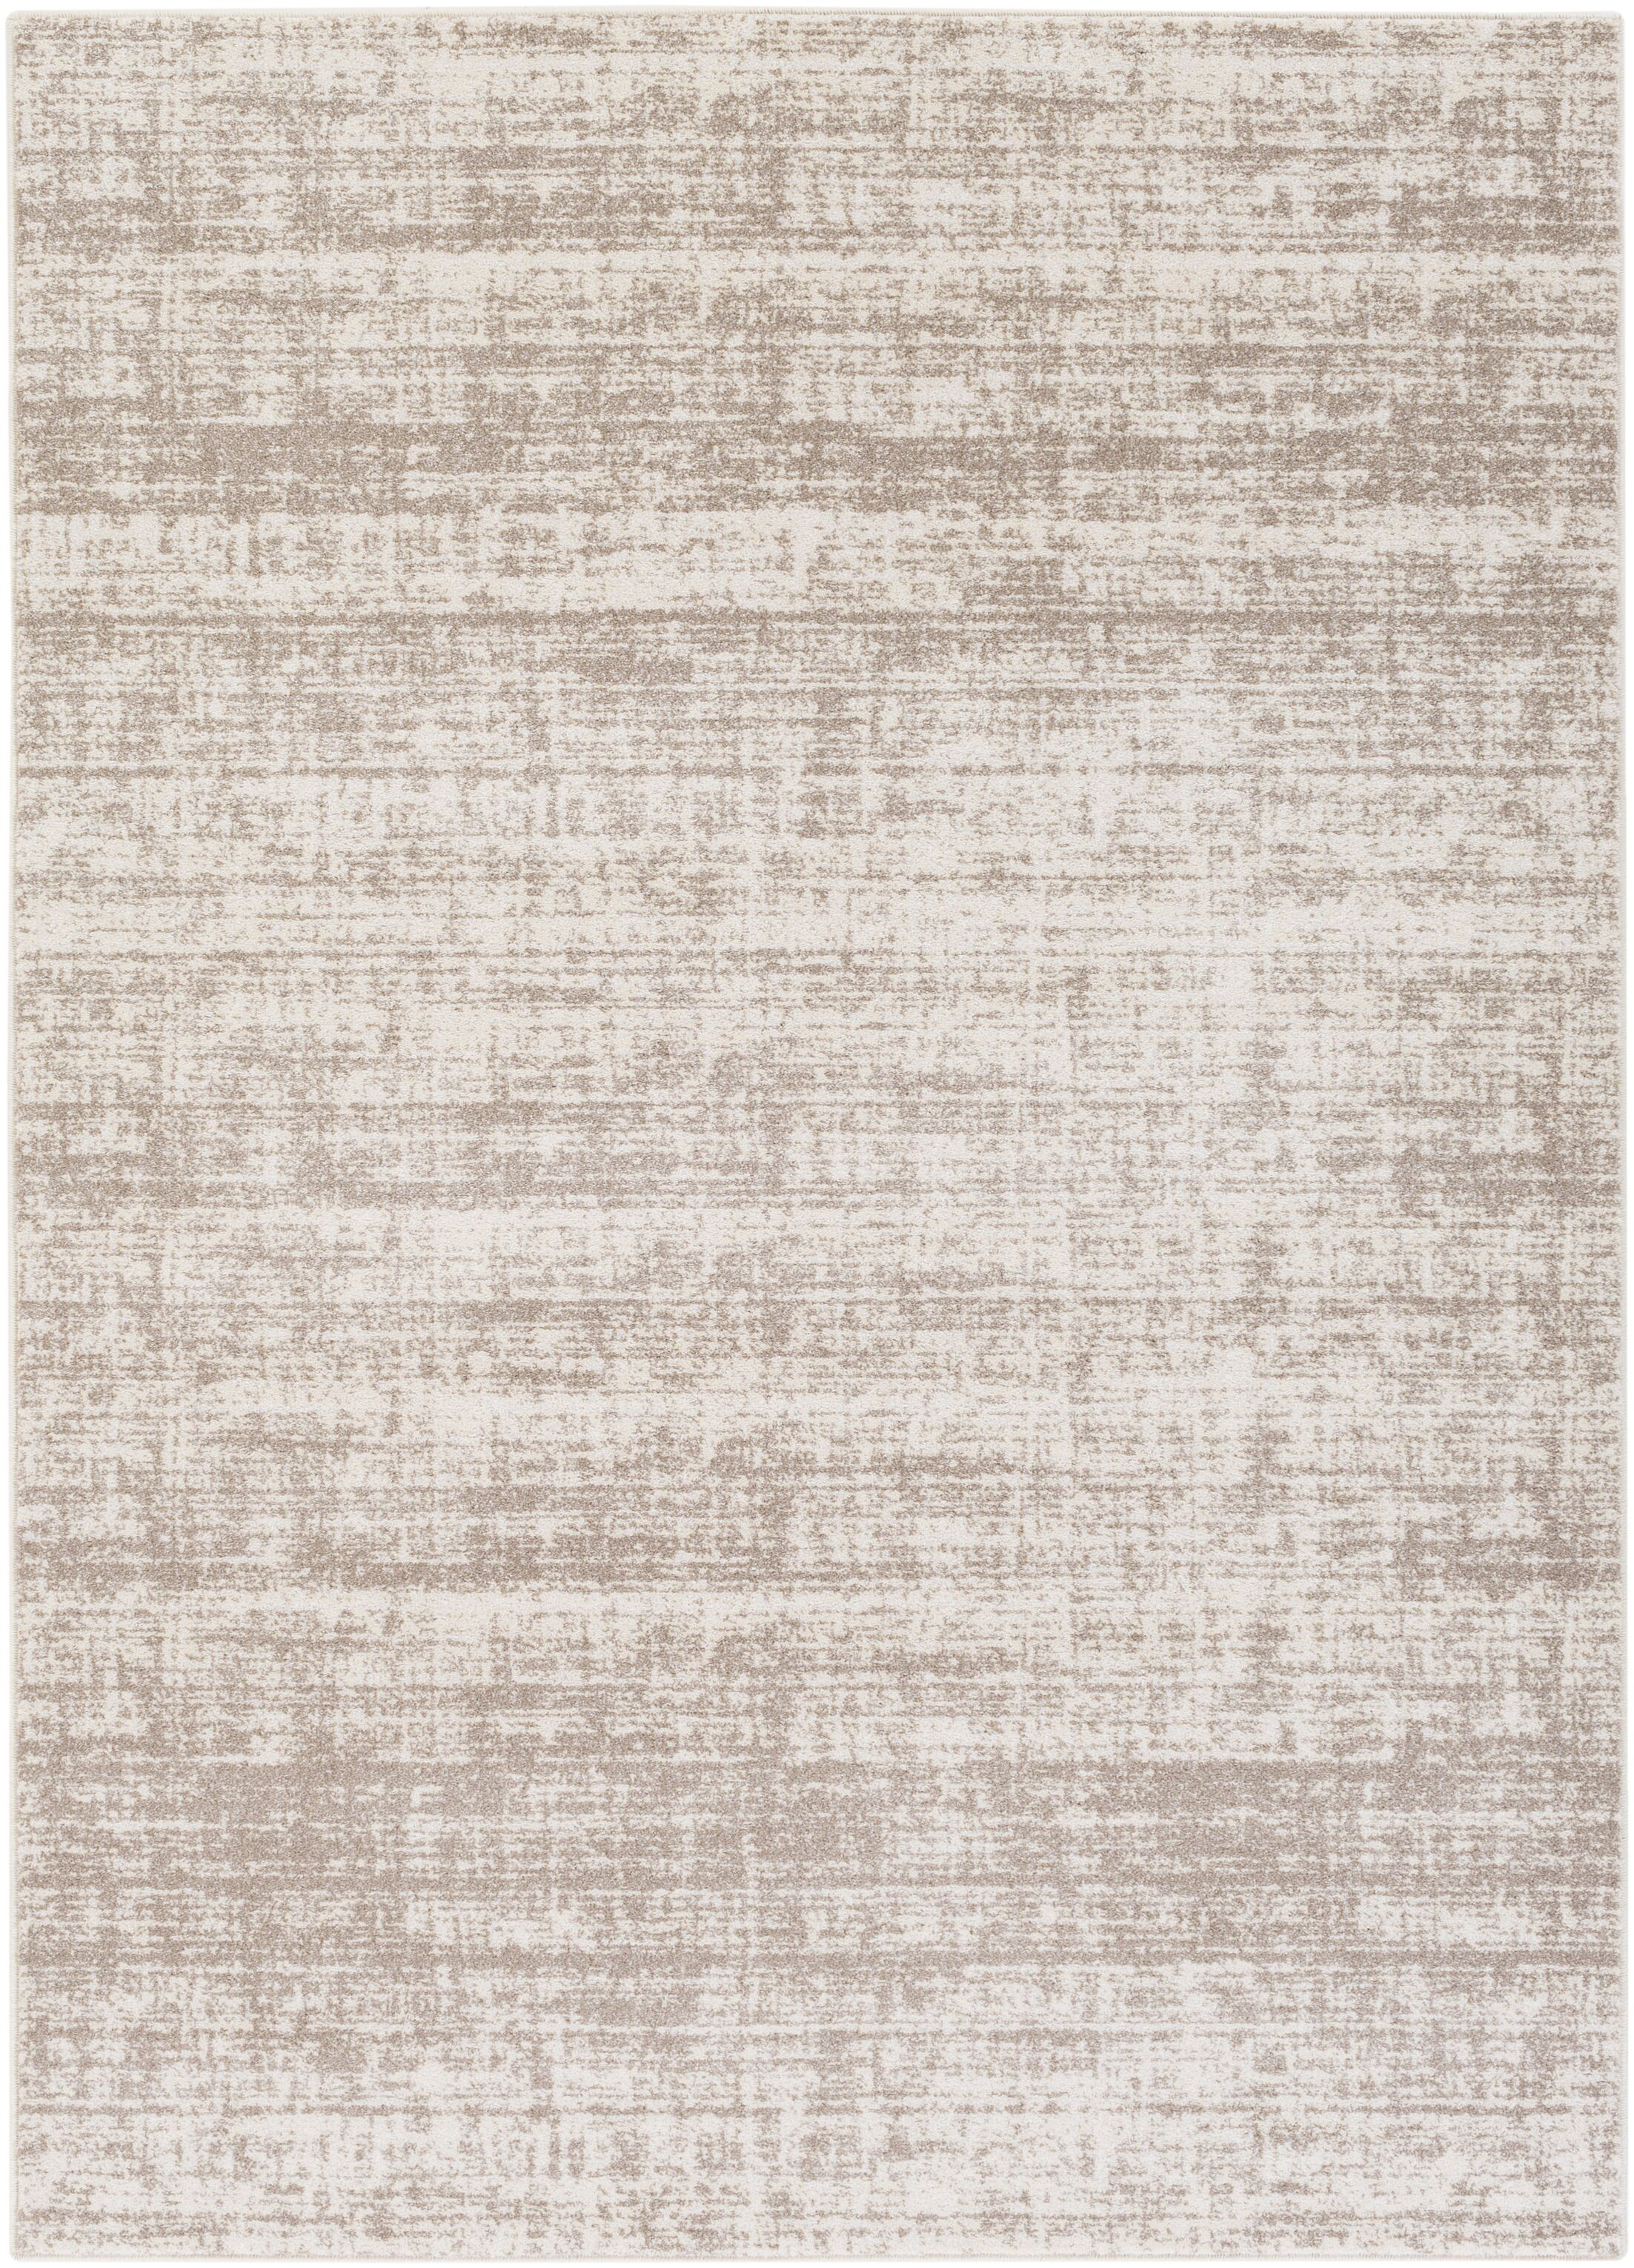 Zellmer Hand-Woven Taupe/Ivory Area Rug Rug Size: Rectangle 5'3